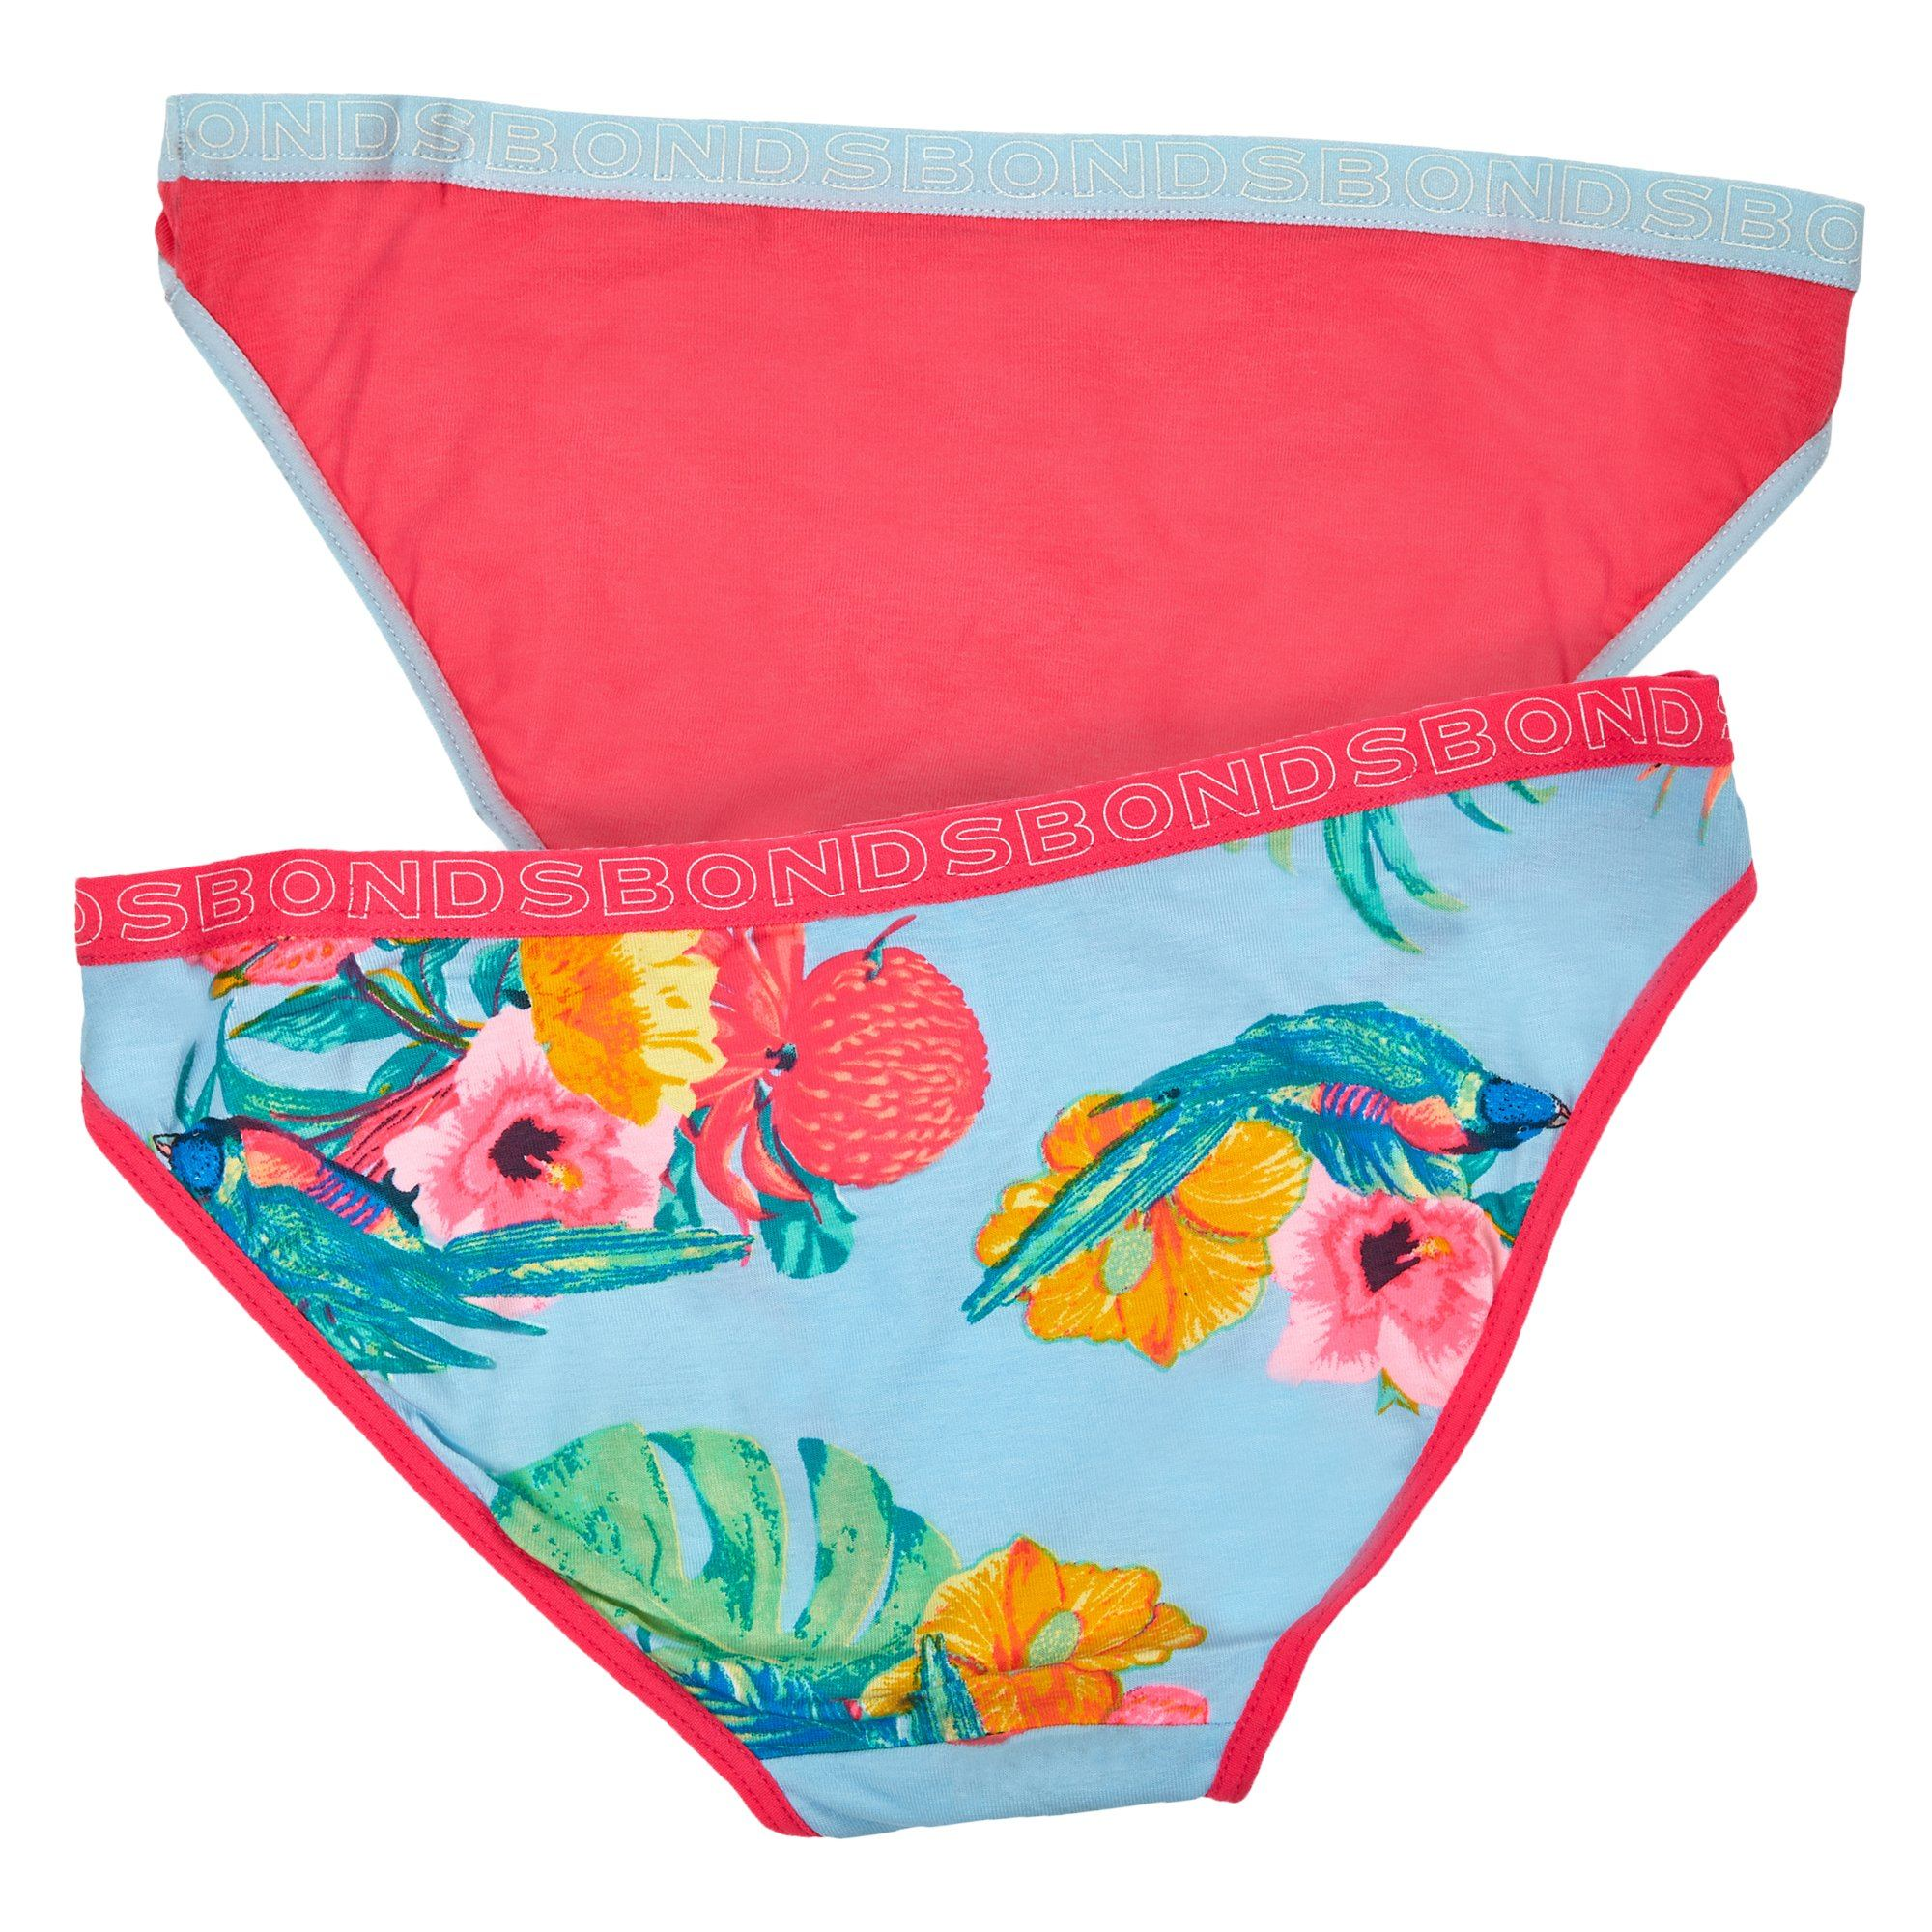 Bonds Children'S Underwear 2Pk Bikini Ydg/Pln - Print 5El Children's Underwear Bonds